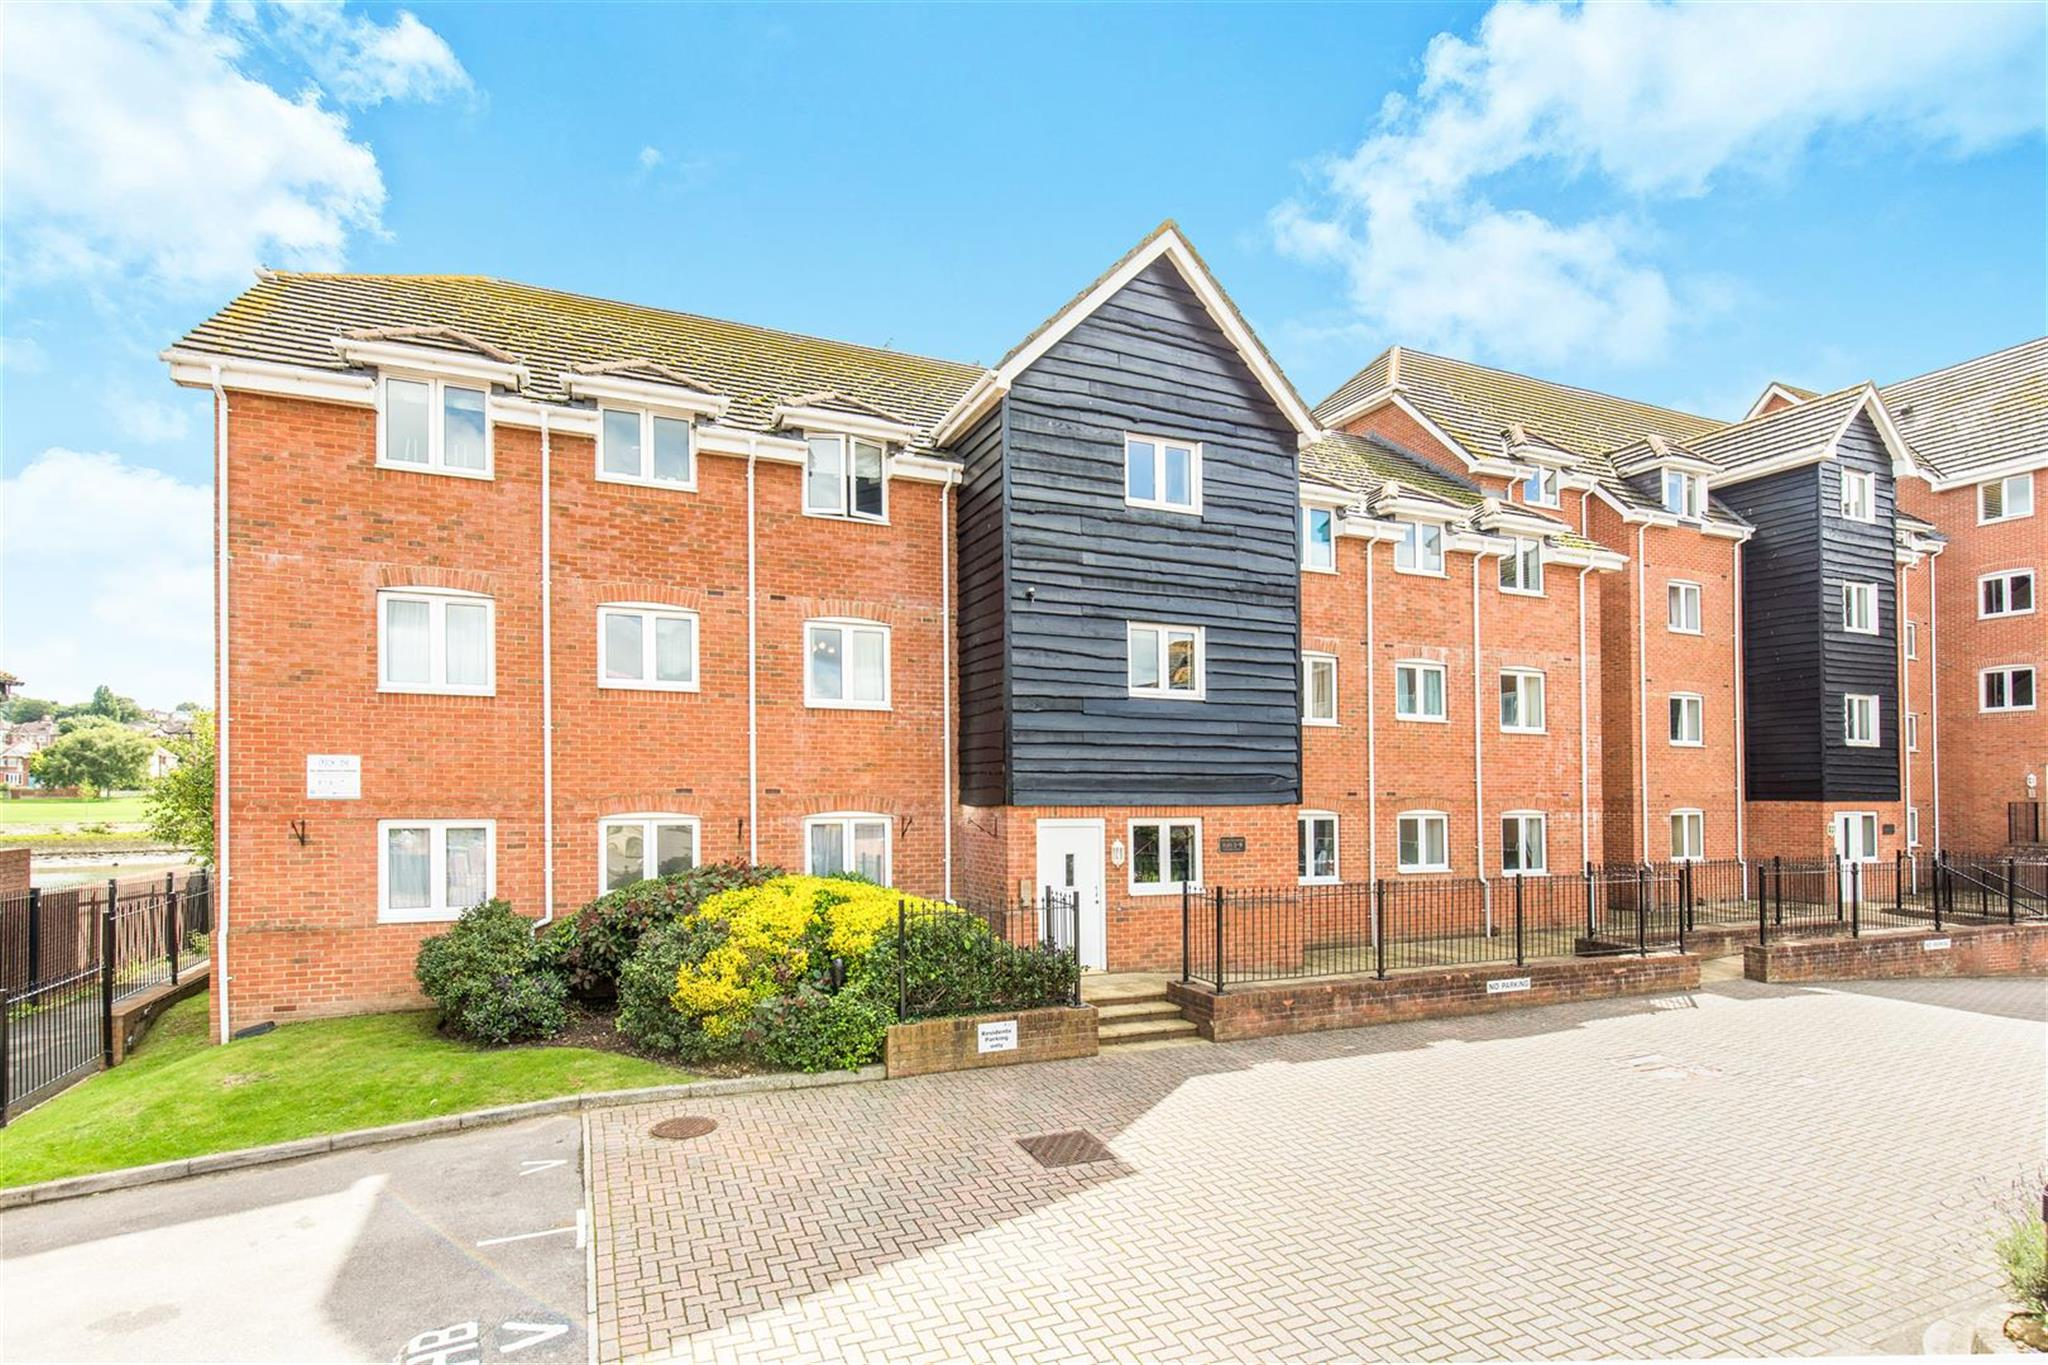 2 bedroom apartment for sale priory avenue southampton. Black Bedroom Furniture Sets. Home Design Ideas